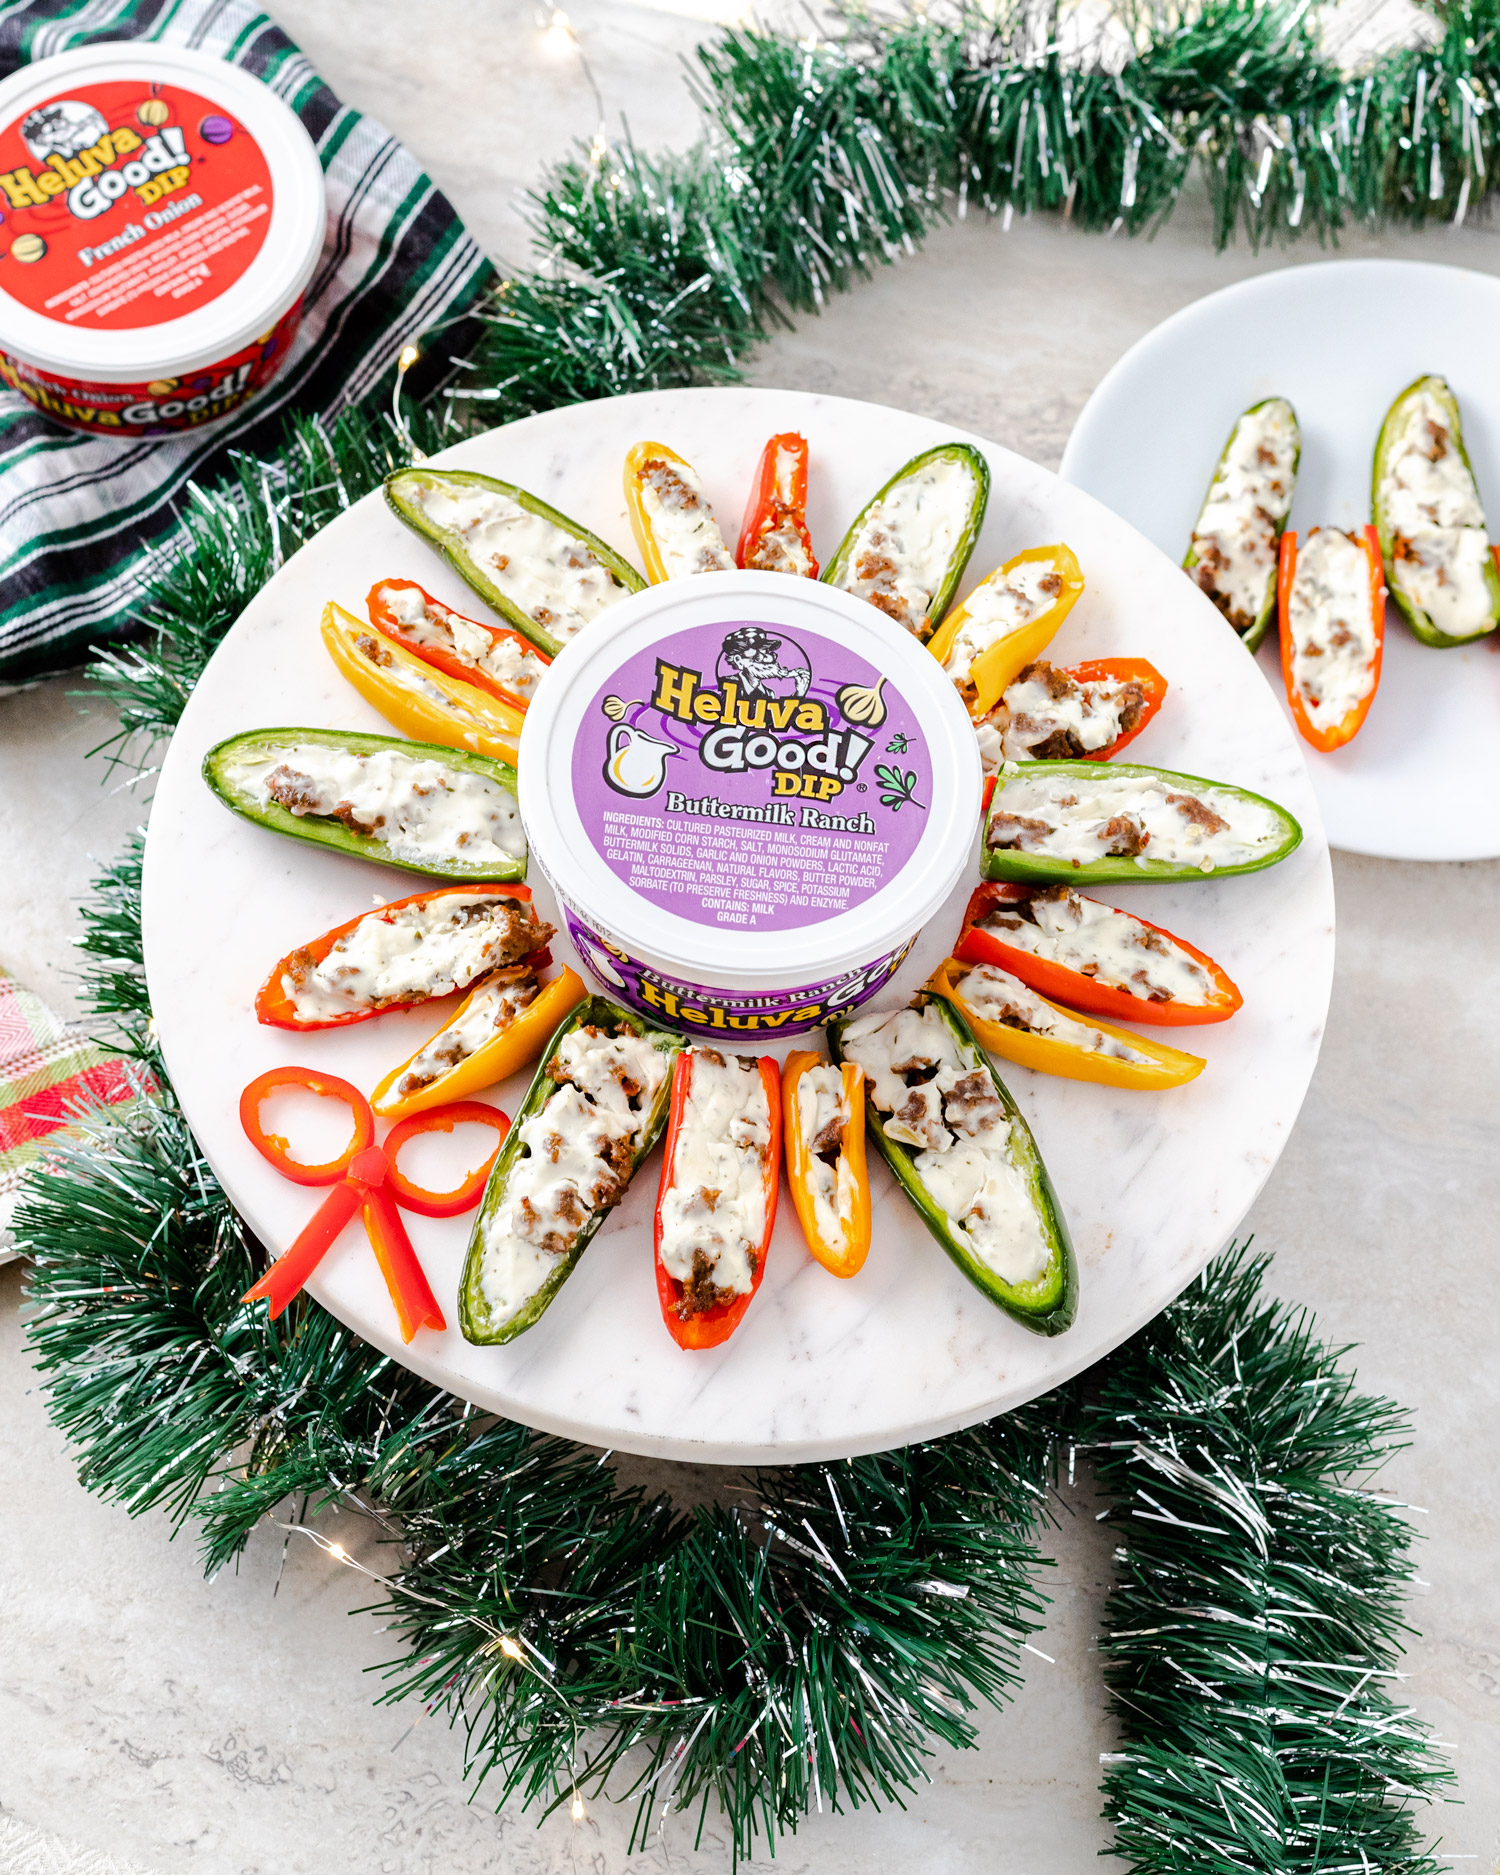 Easy 4 Ingredient Holiday appetizer for spicy stuffed peppers filled with Italian hot sausage and Heluva Good French Onion Dip. Baked and then ready to serve with a side of Heluva Good Buttermilk Ranch Dip. #sponsored #ElleTalk #HolidayEntertaining #HolidayAppetizer #EasyAppetizer #HotSausage #StuffedPeppers #FrenchOnionDip